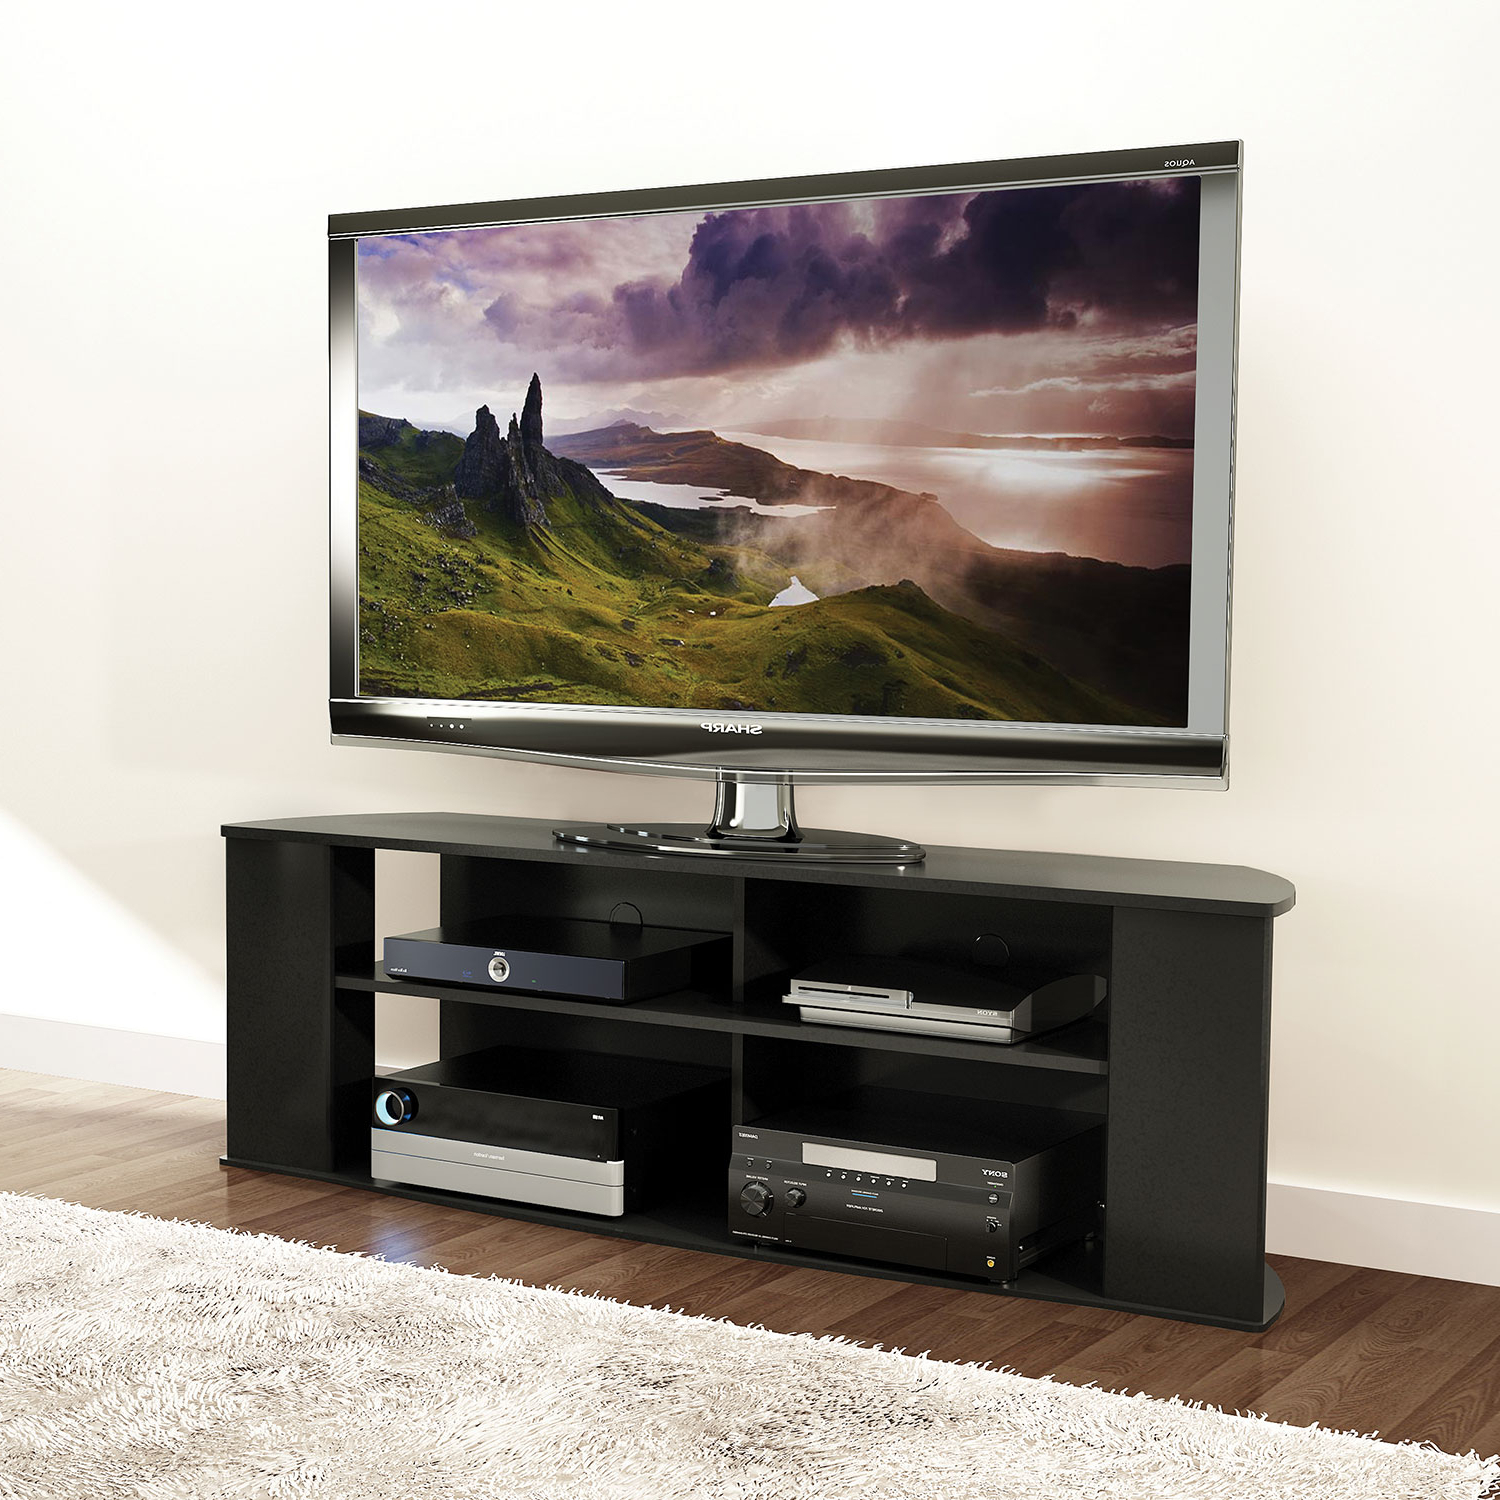 "Most Recent Prefac Essentials 60"" Tv Stand – Black : Tv Stands – Best Buy Canada With Regard To Long Black Tv Stands (View 15 of 20)"